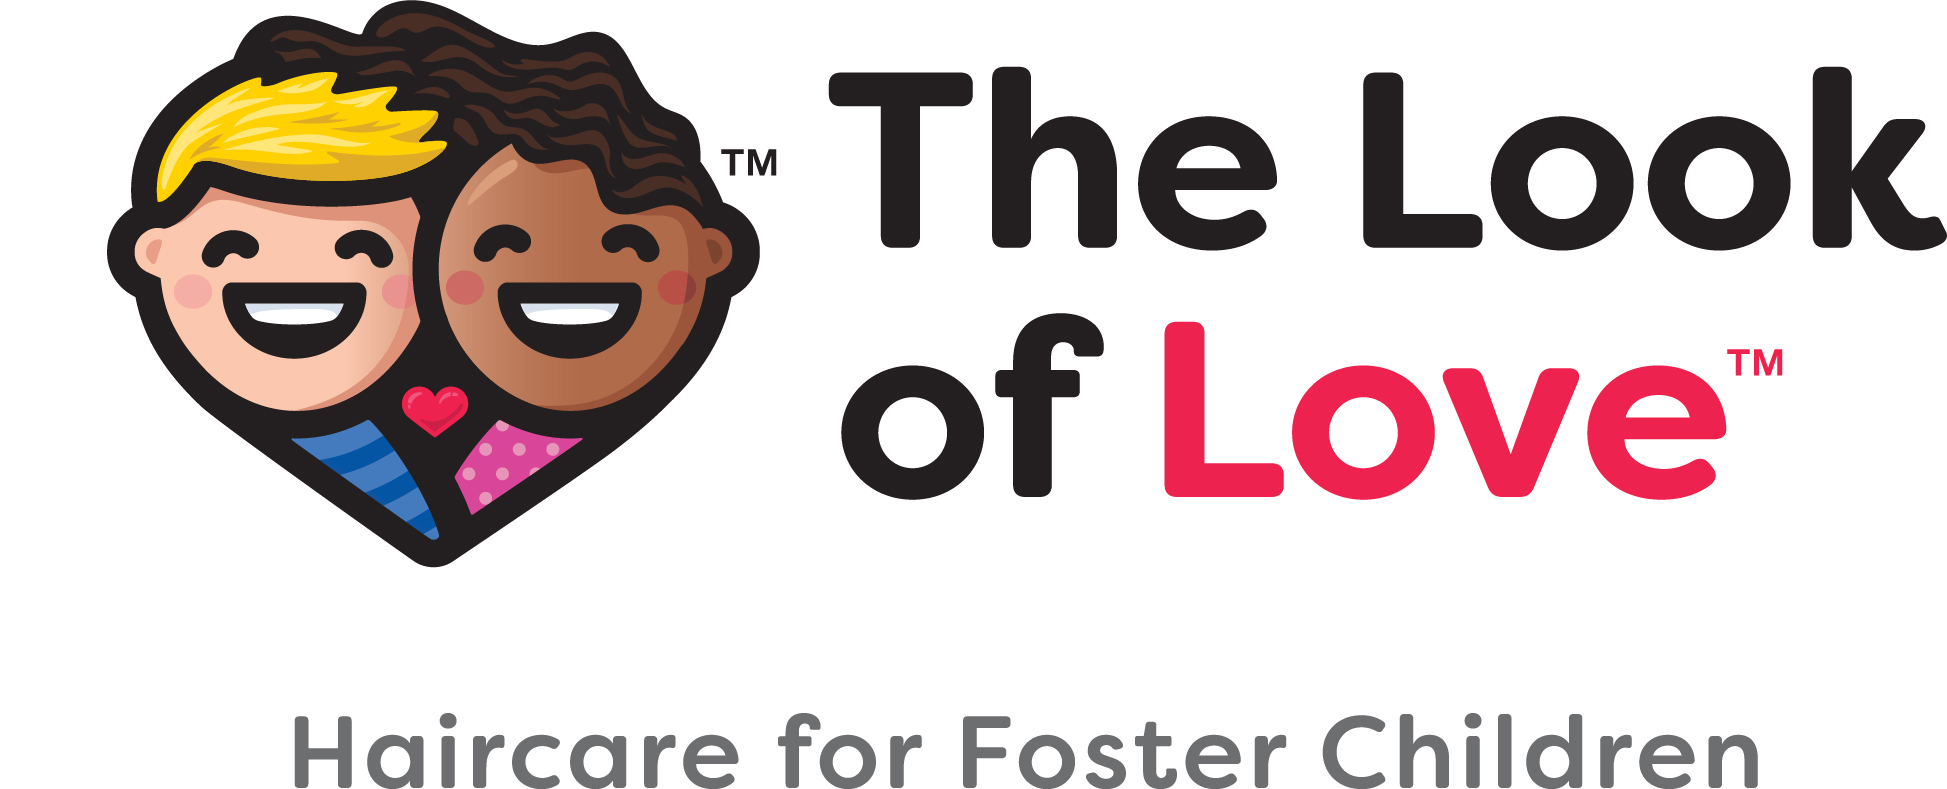 www.TheLOL4Kids.org-The-Look-of-Love-Haircare-foster-kids-homeless-youth-Hair-care-thelol4kids-foster-care-mission-create-mission-accomplish-niya-parks-501c3-501(c)(3)-charity-tax-deductible-donation Niya Parks President & Founder